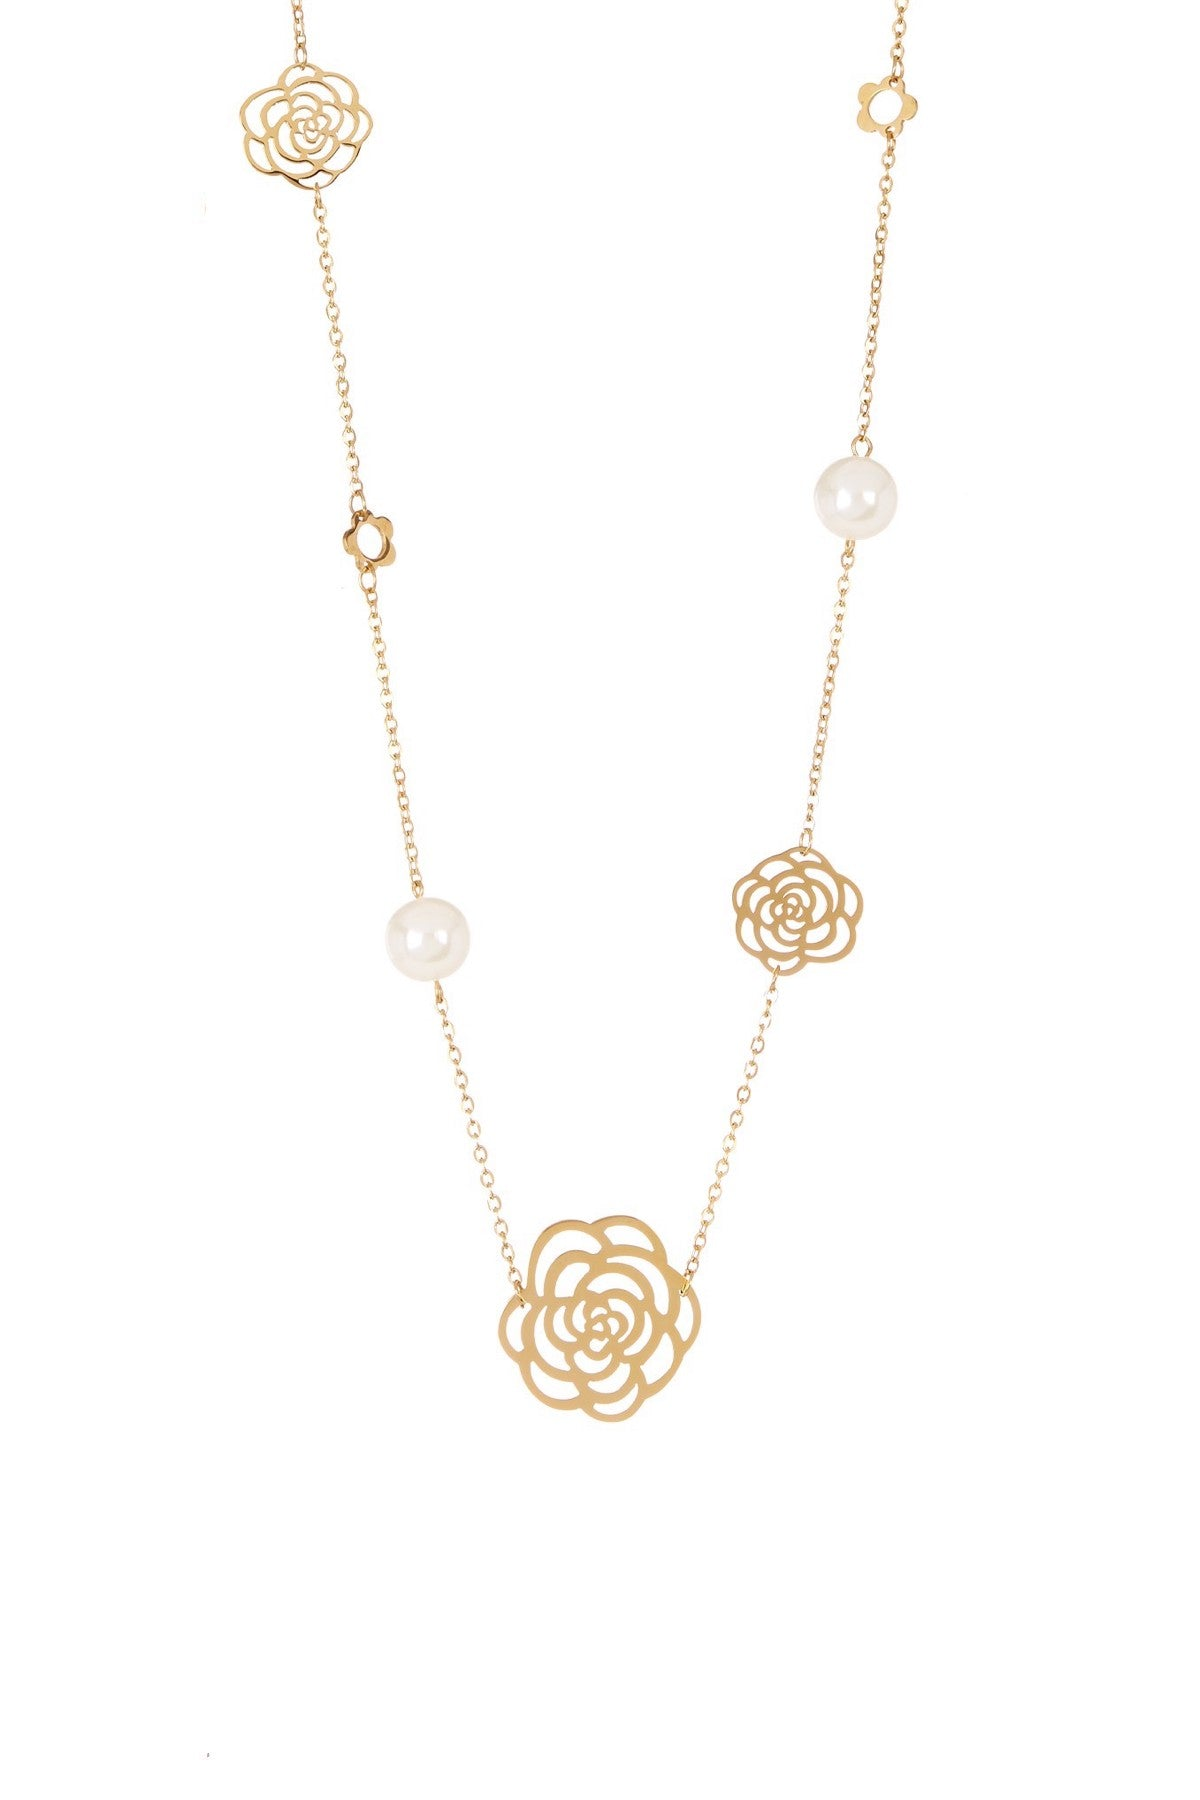 18K Gold Plated Cut-out Rose & Pearl Long Necklace